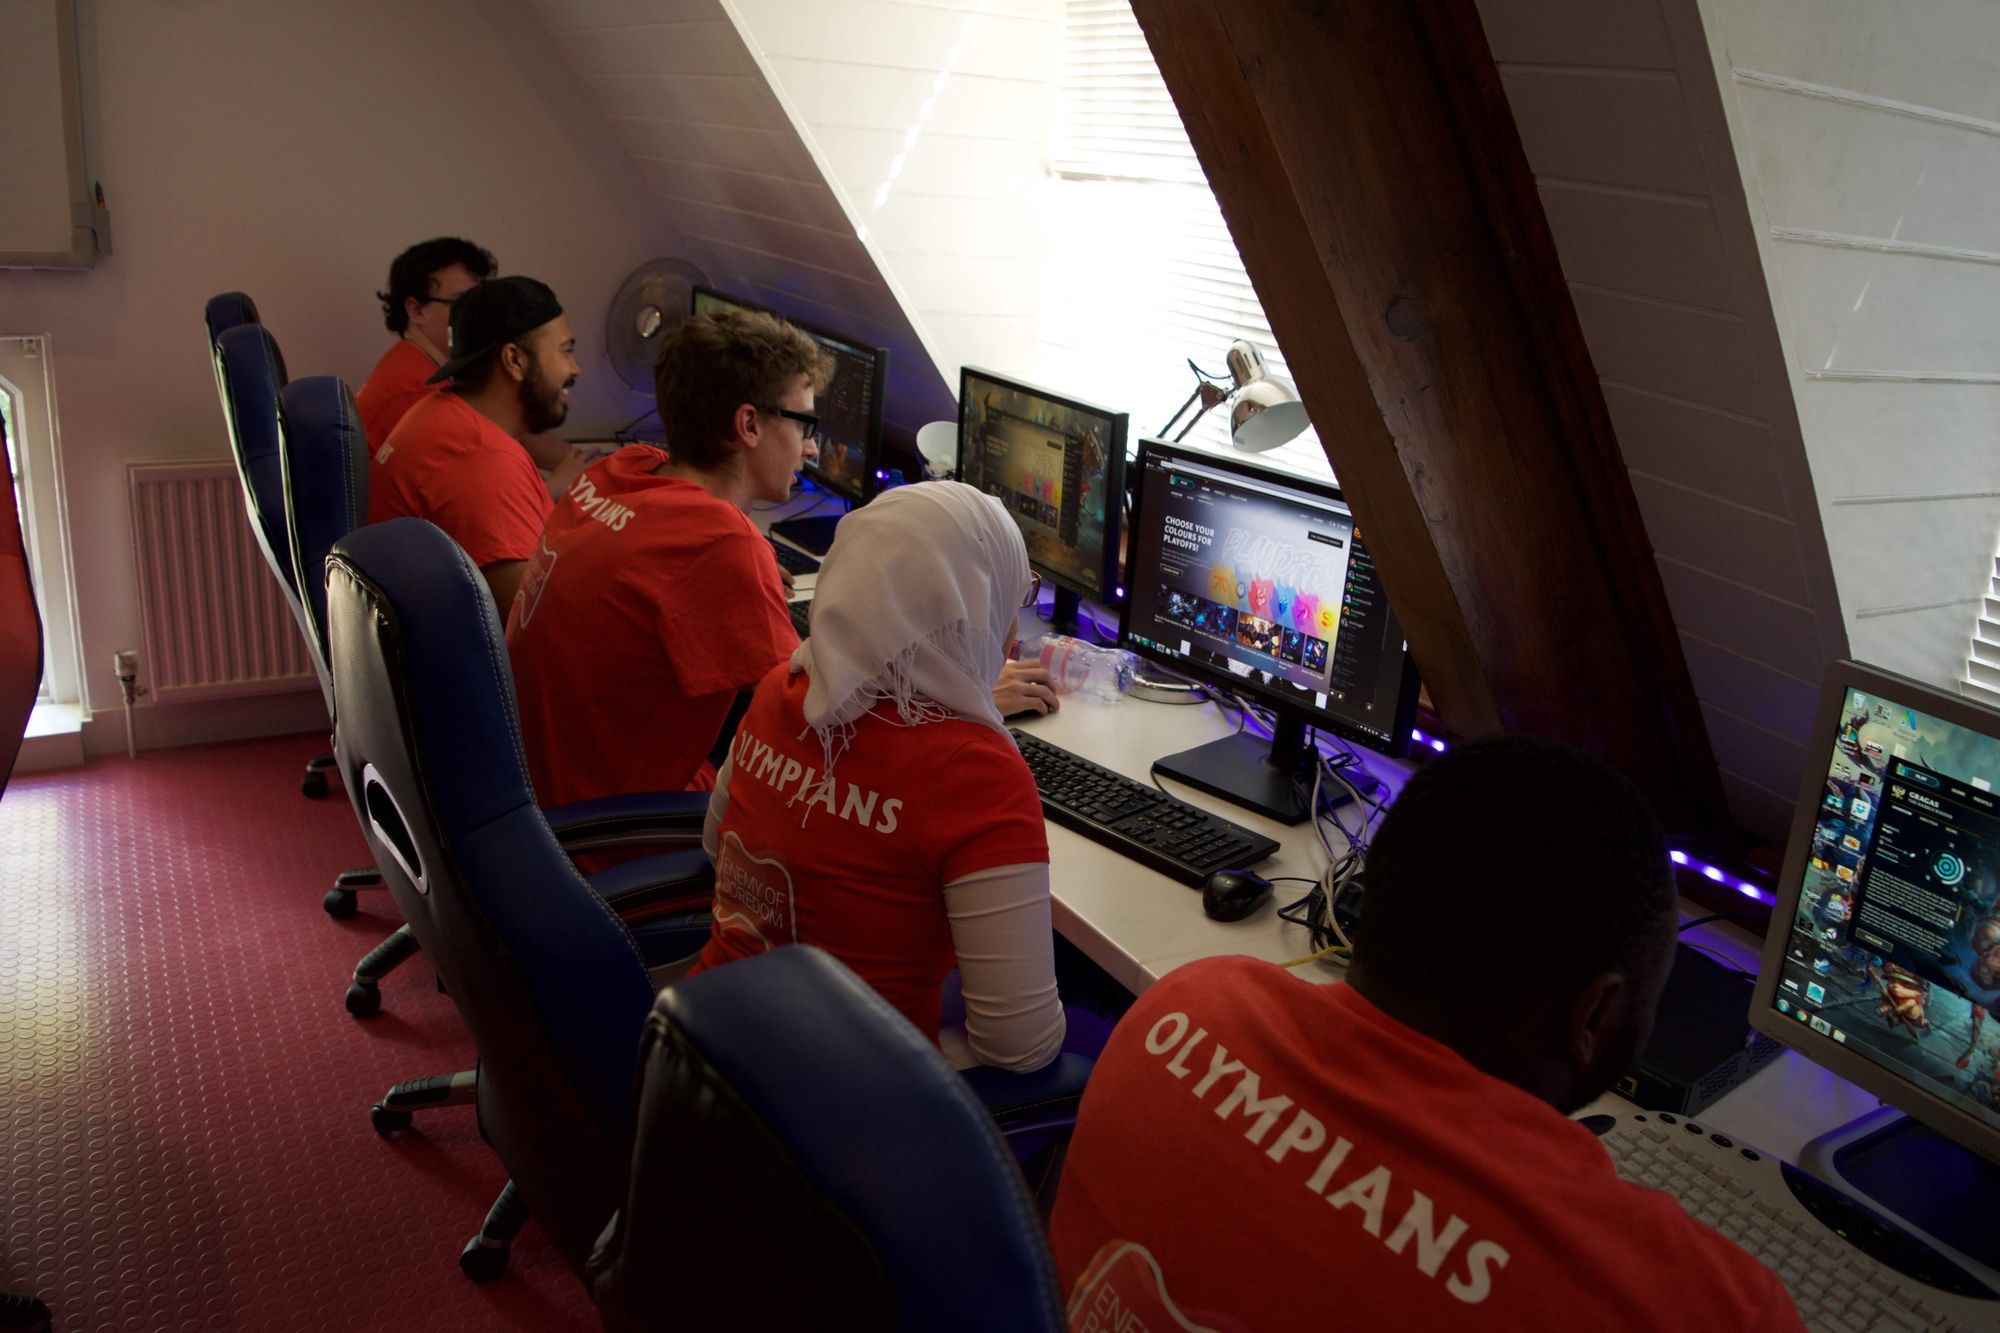 british-esports-article-about-the-eob-esports-academy